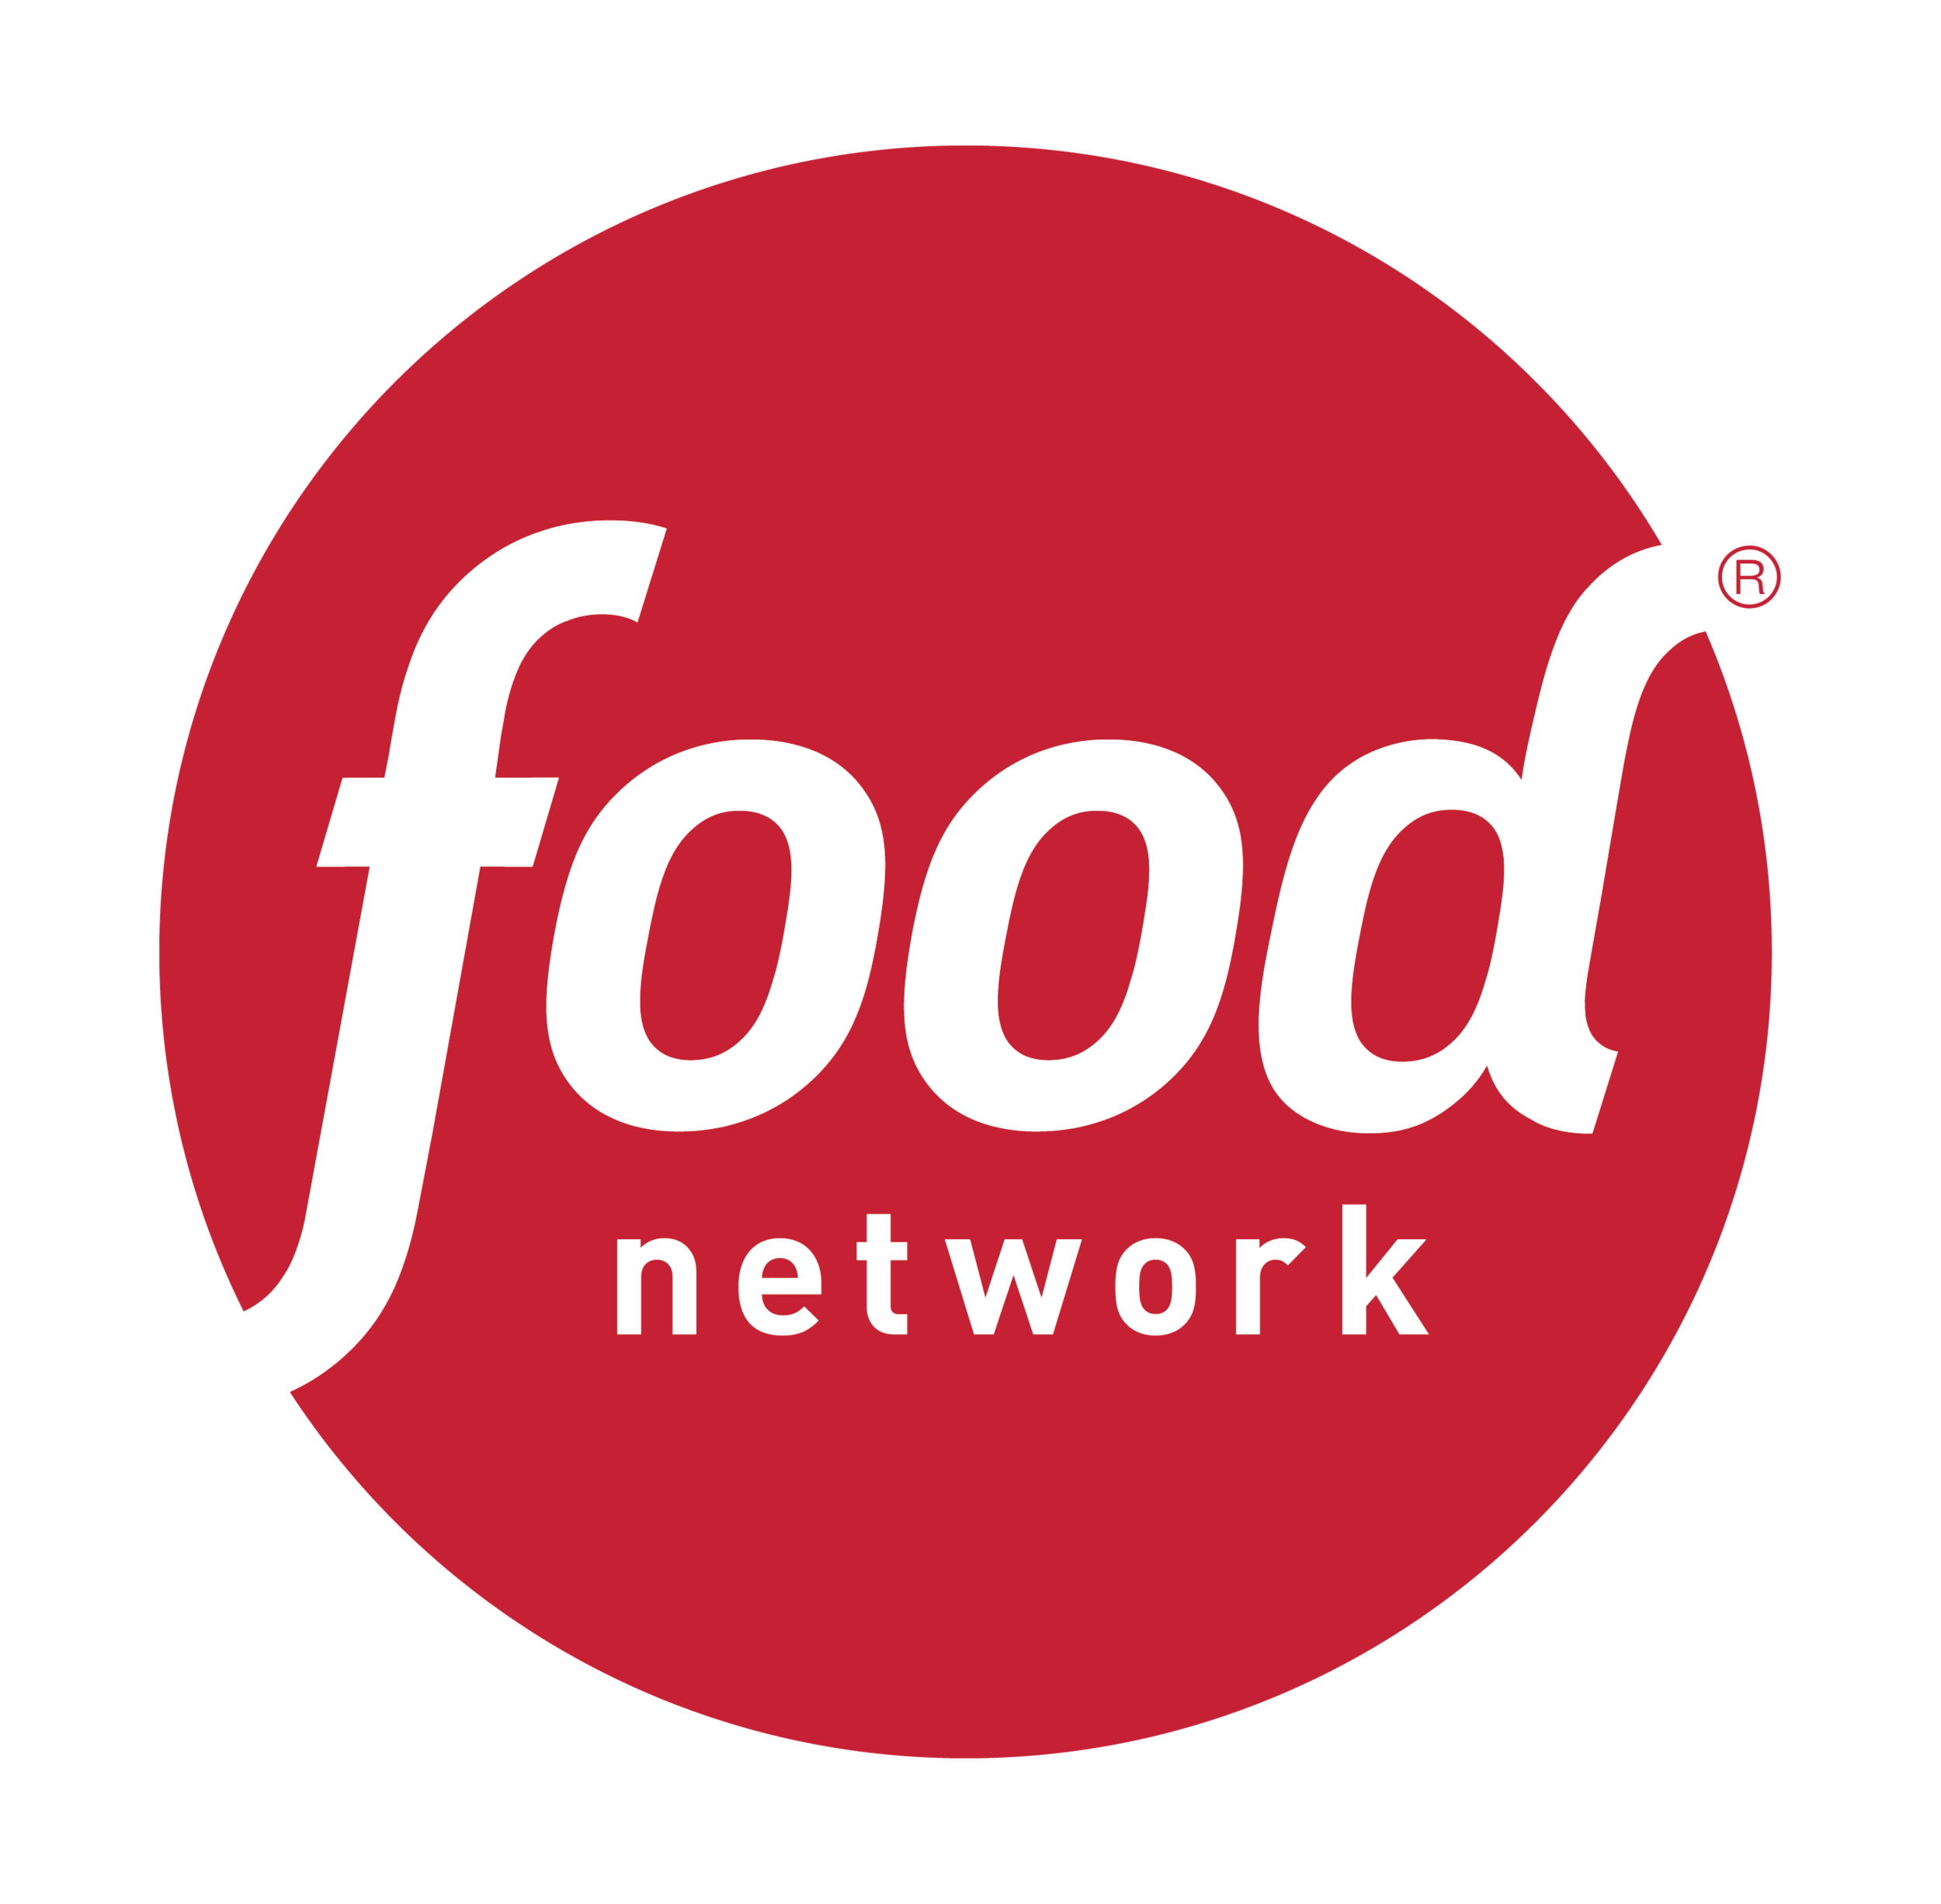 FoodNetwork_LOGO_PMS_R (1)[2].png